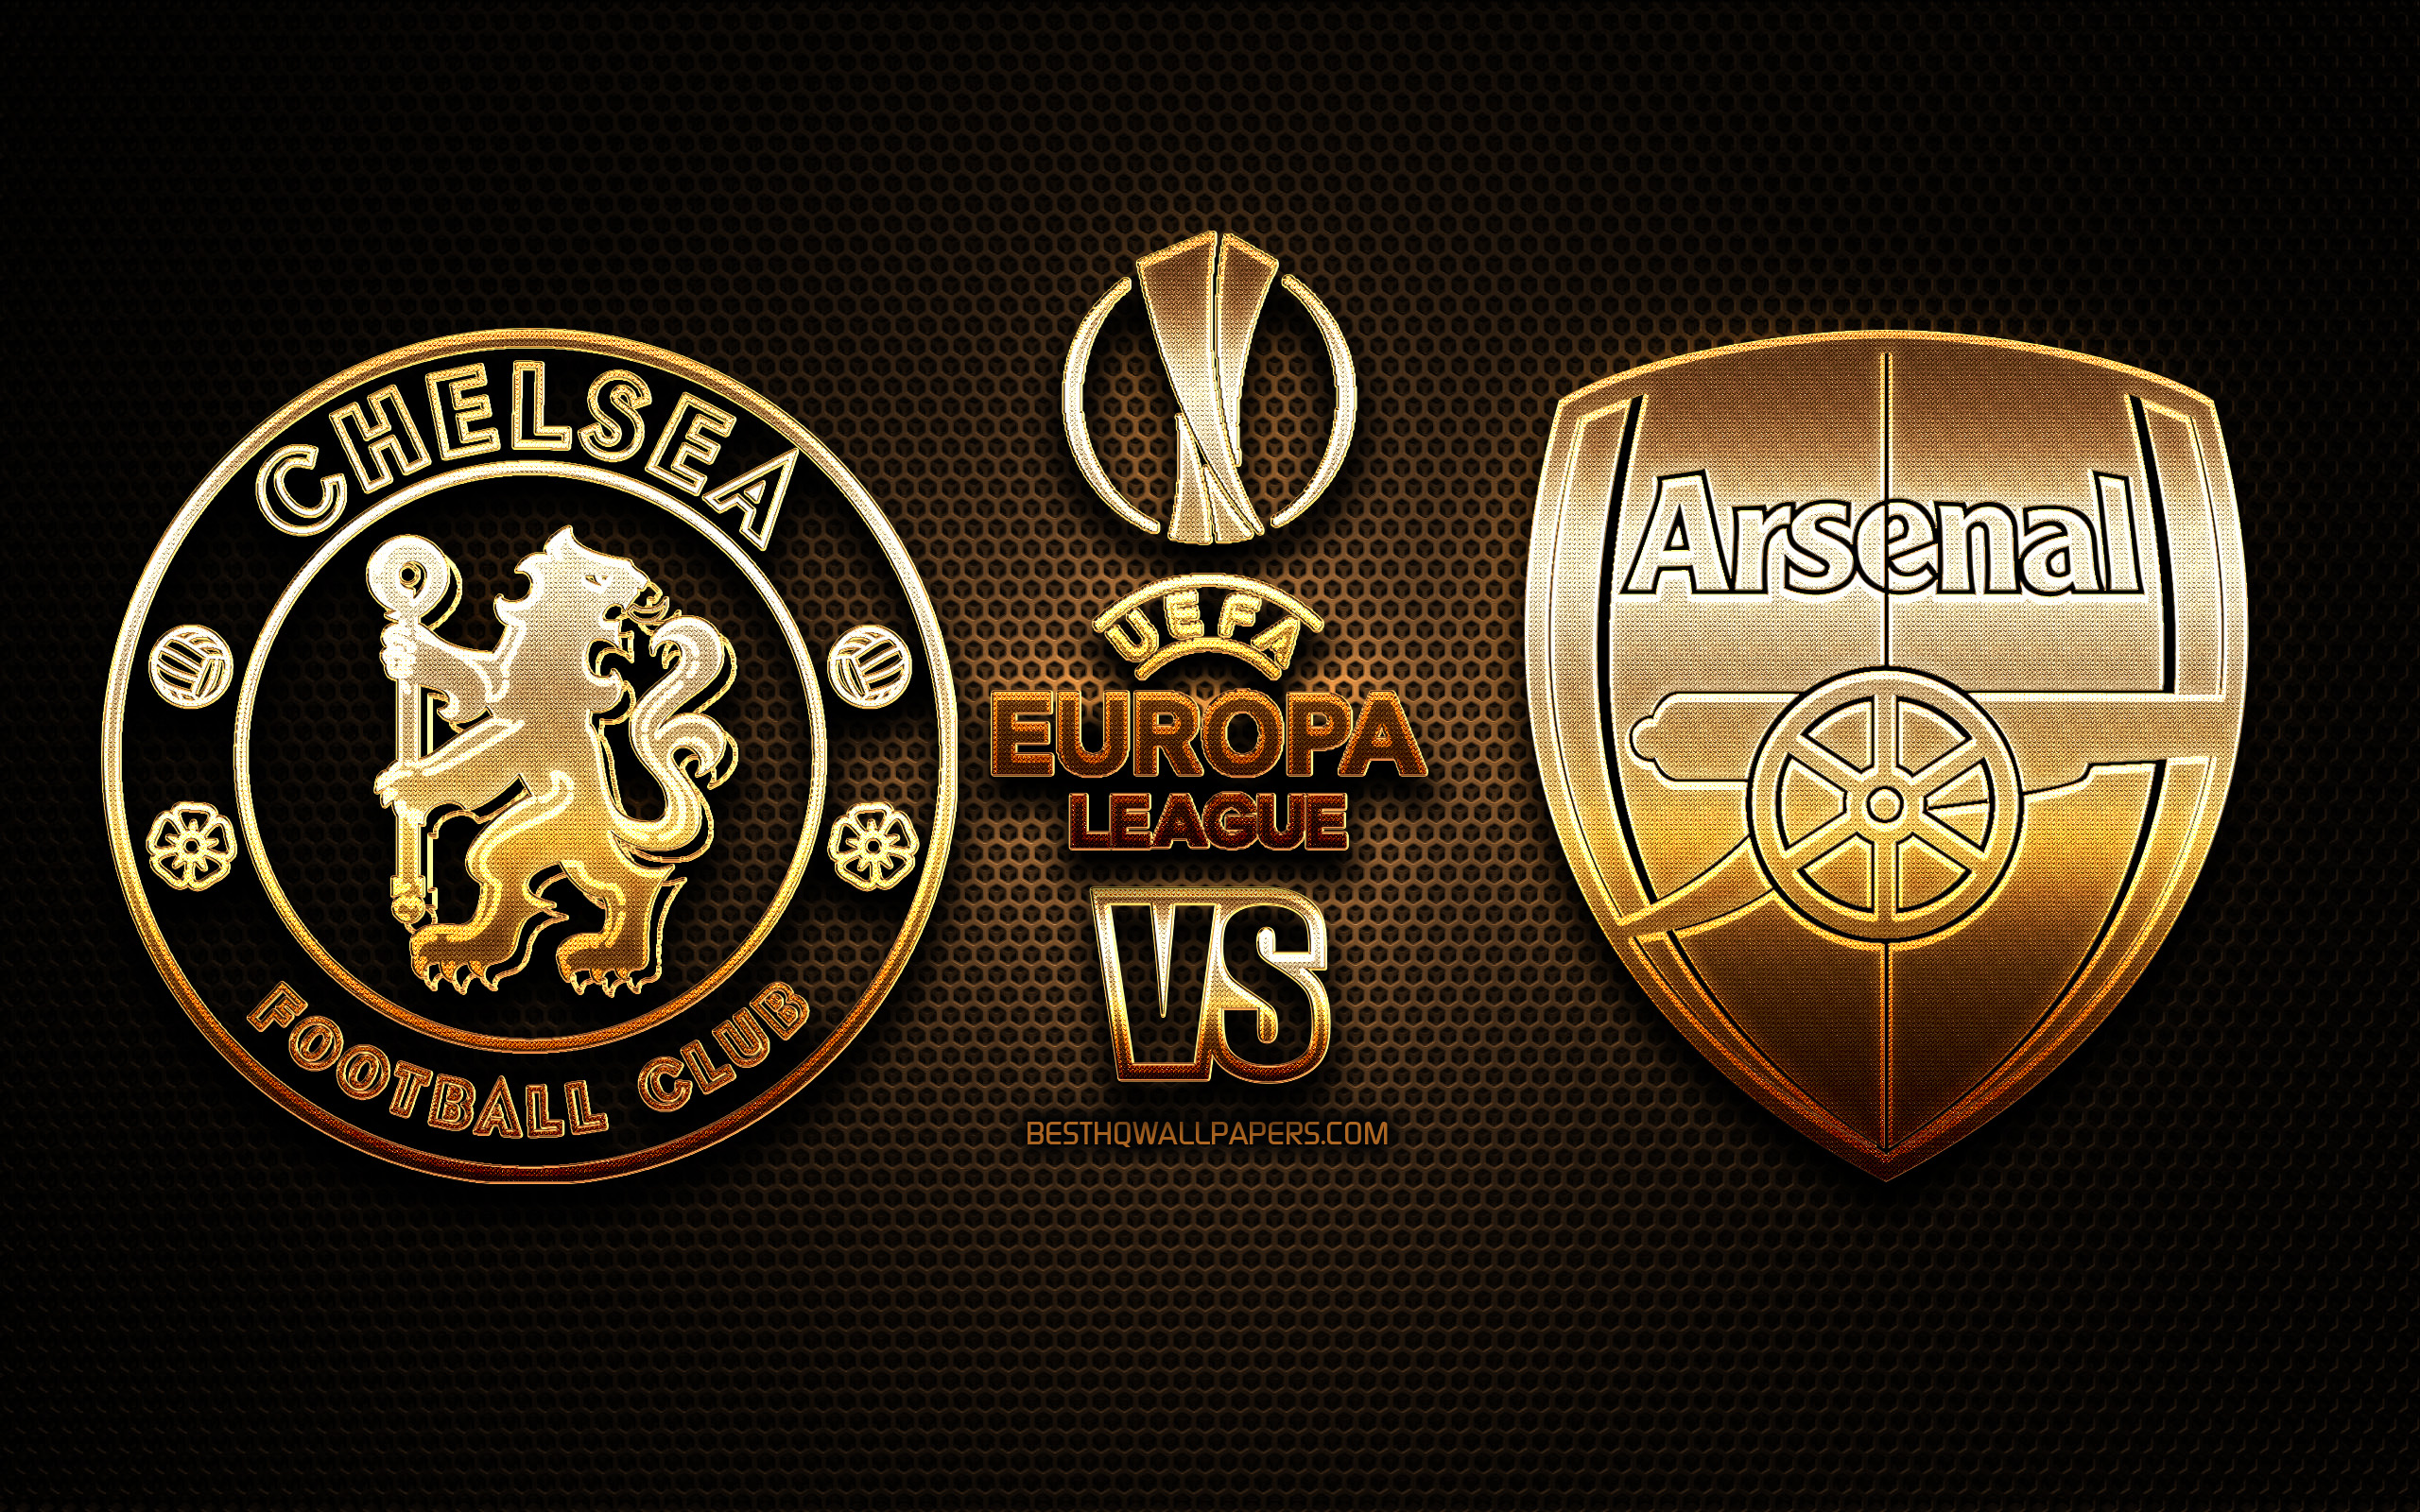 Chelsea Vs Arsenal 2019 Uefa Europa League Final Uefa